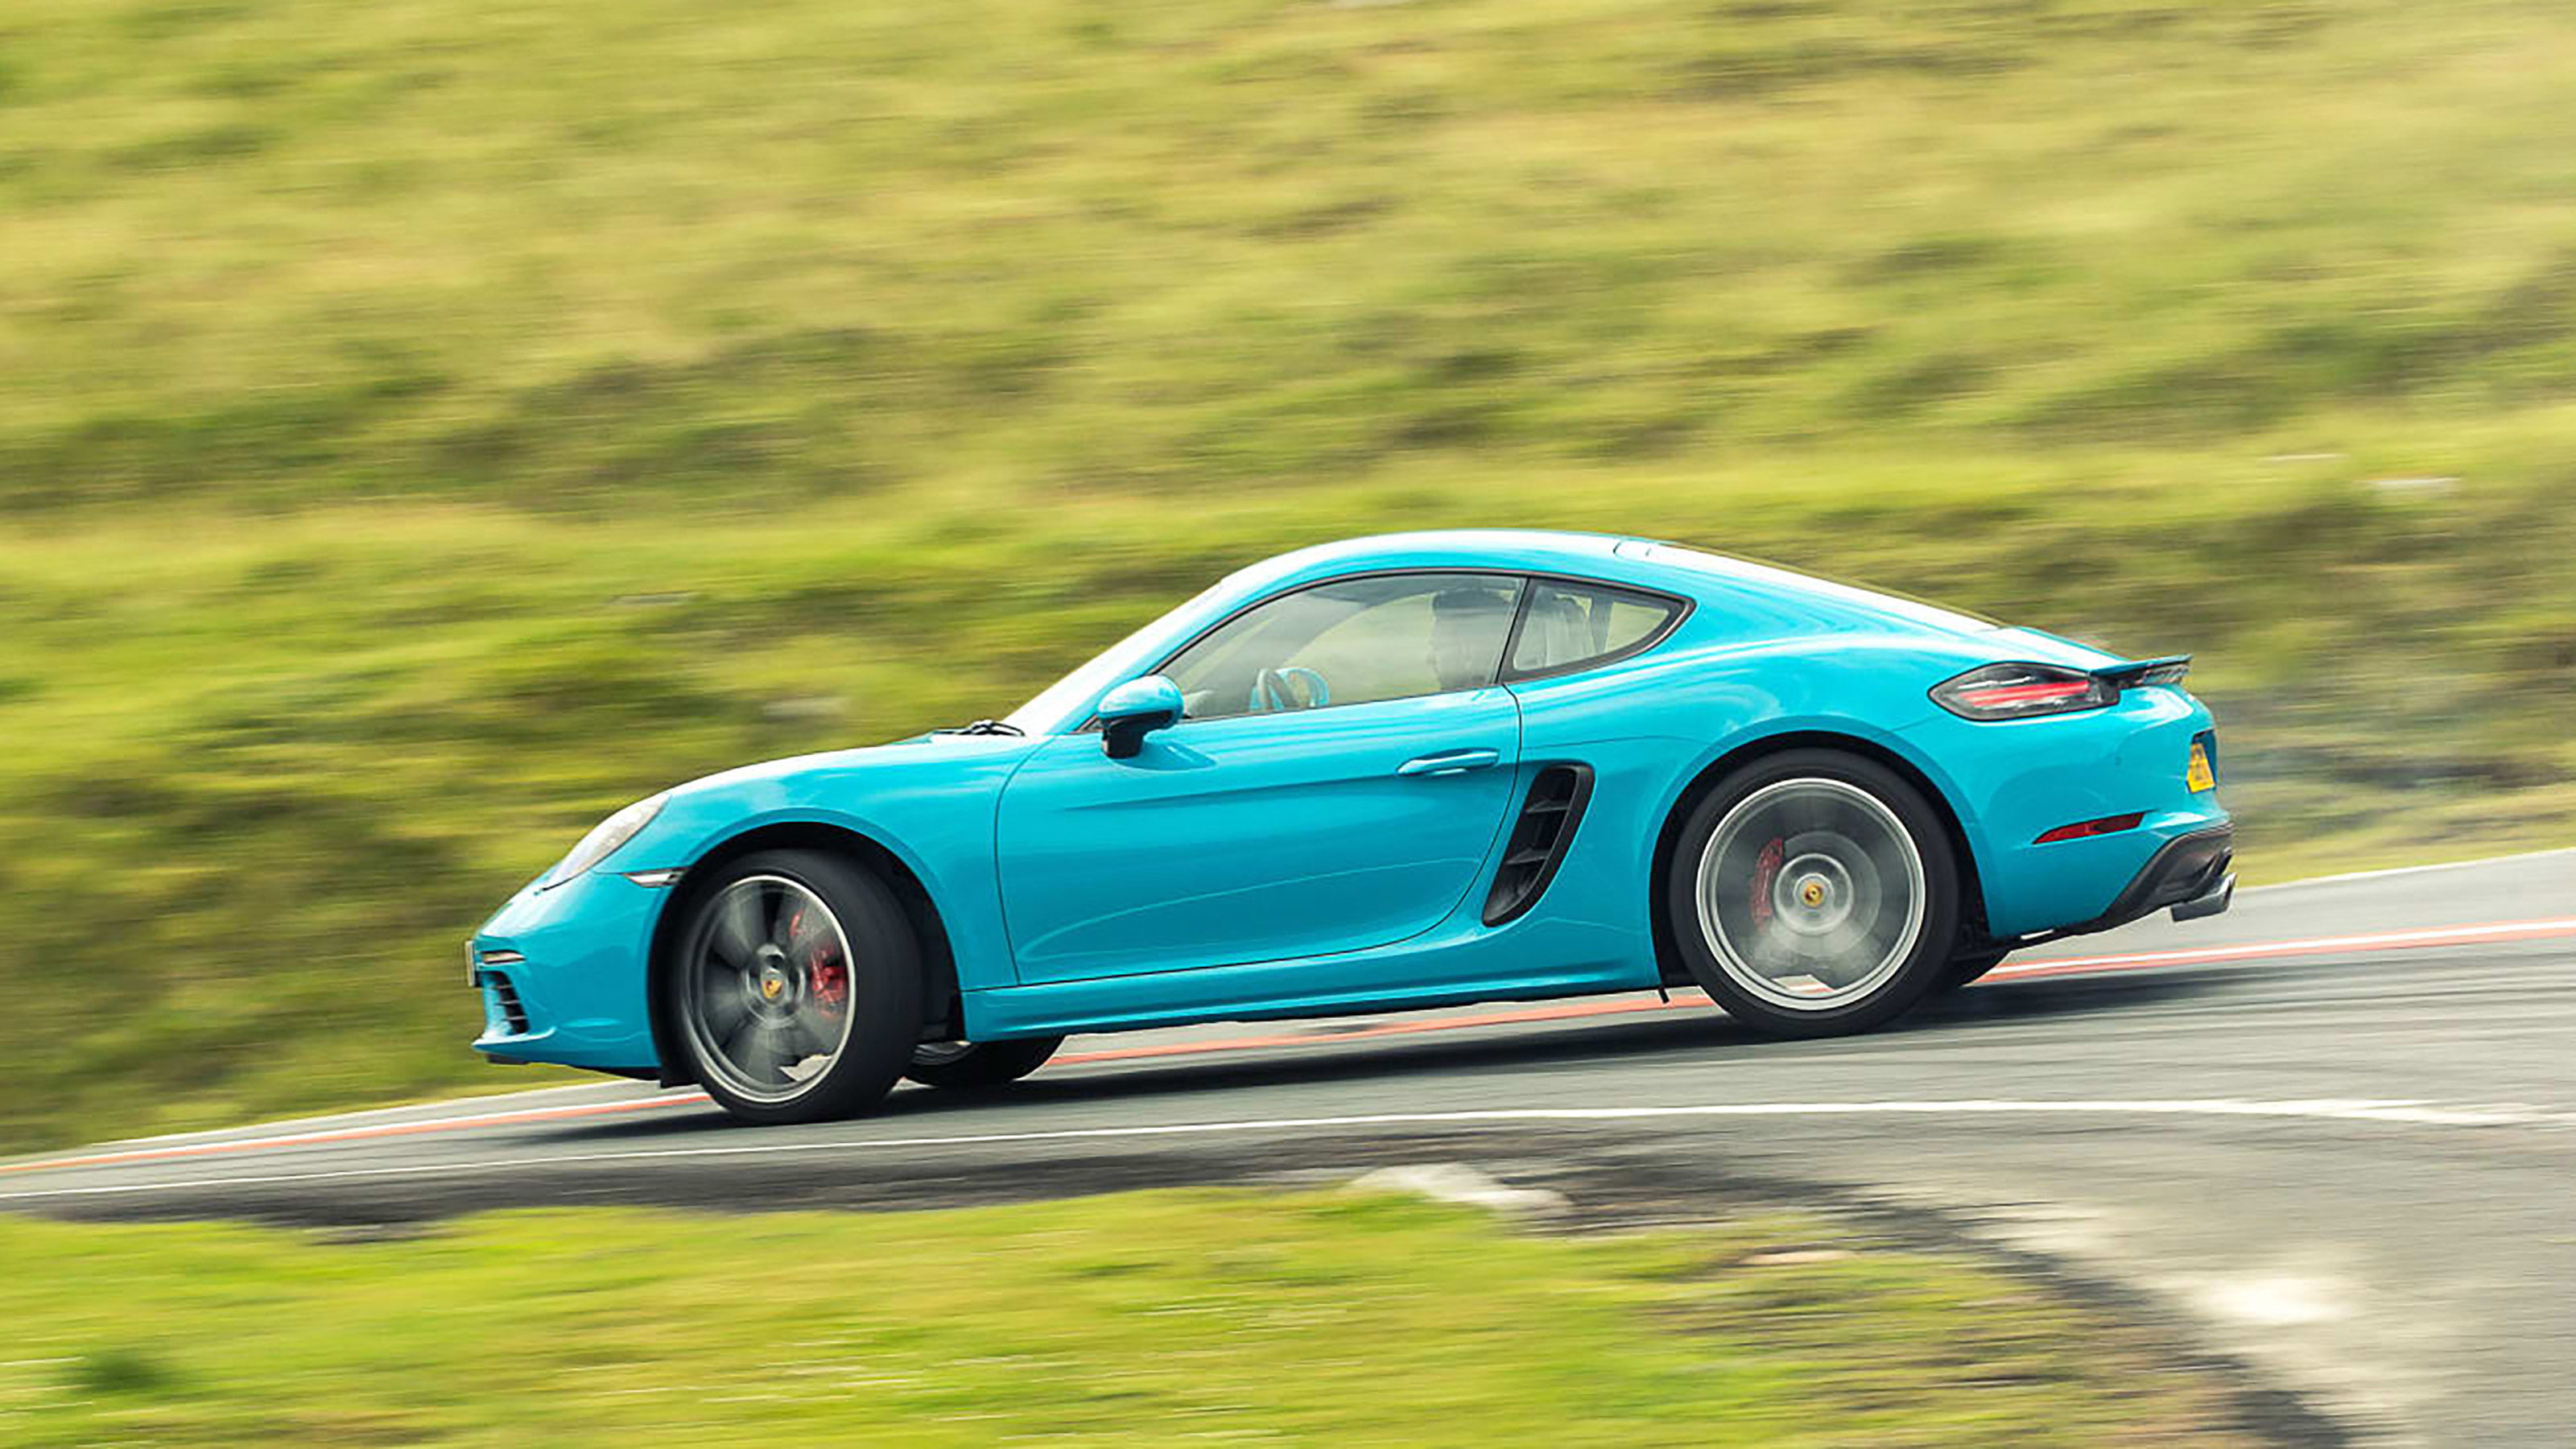 Porsche 718 Cayman Review The Entry Level Porsche Punches Above Its Weight Evo